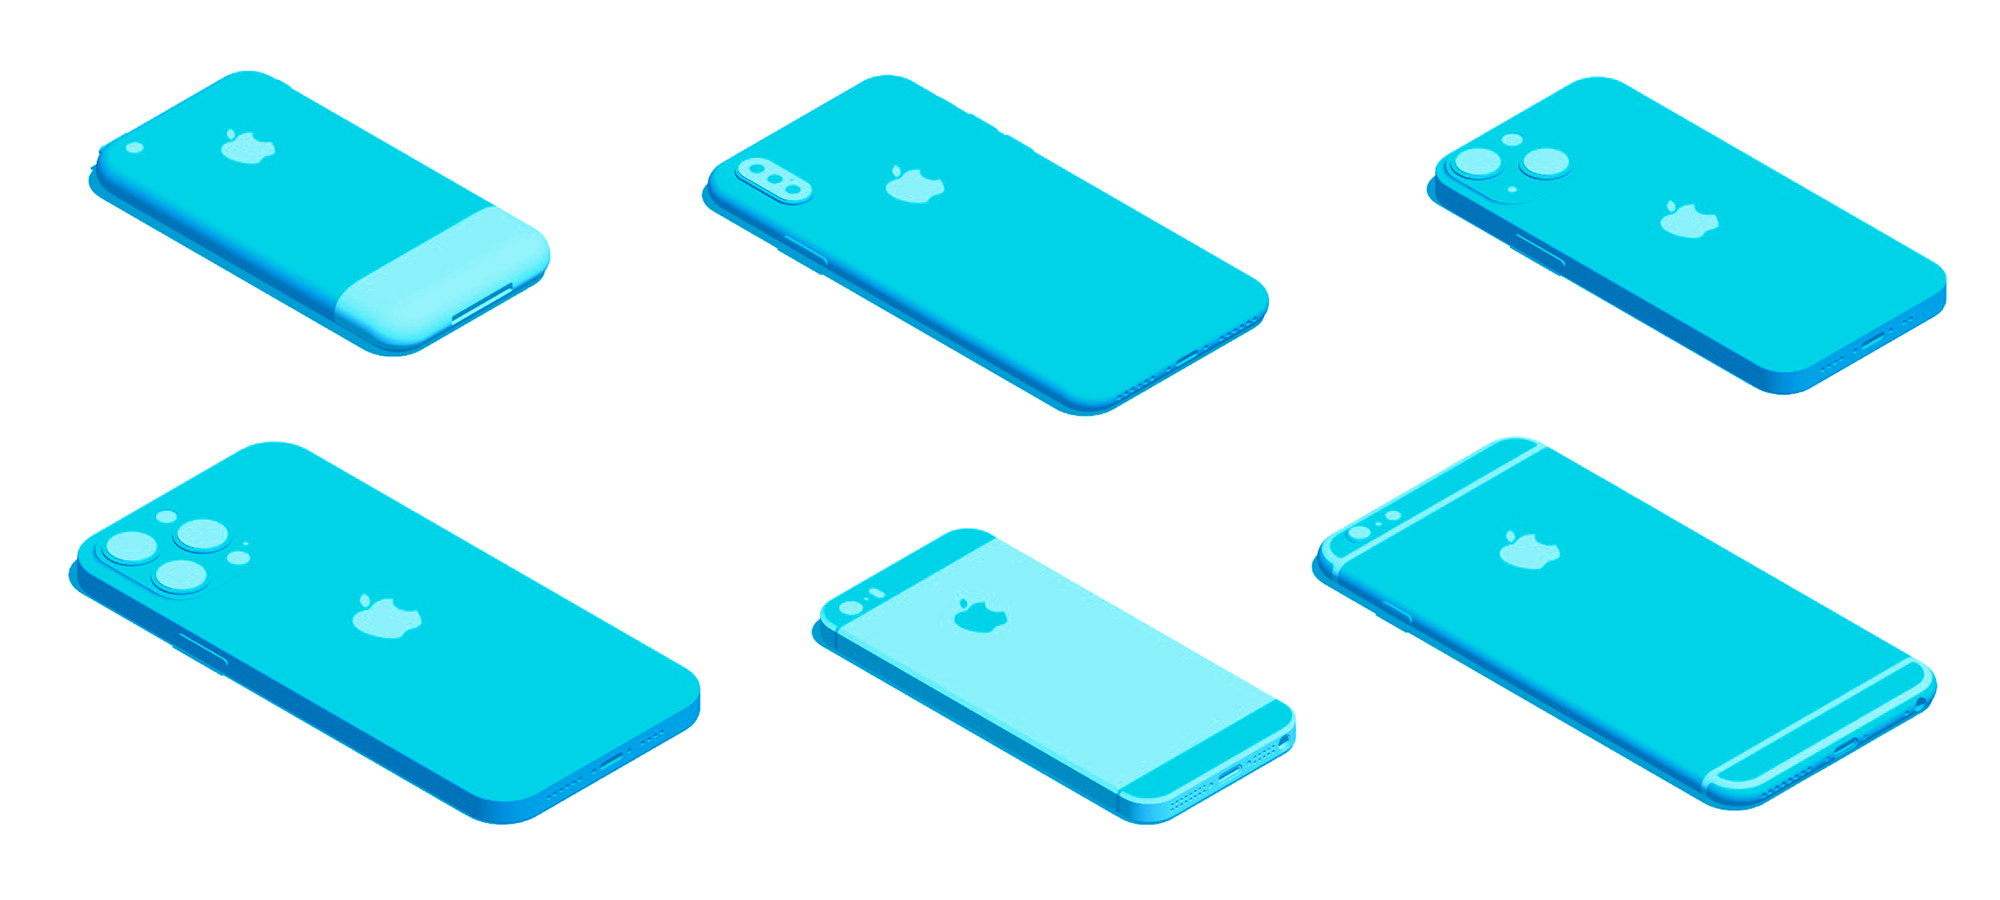 Collection of various Apple iPhone designs visualized in 3D